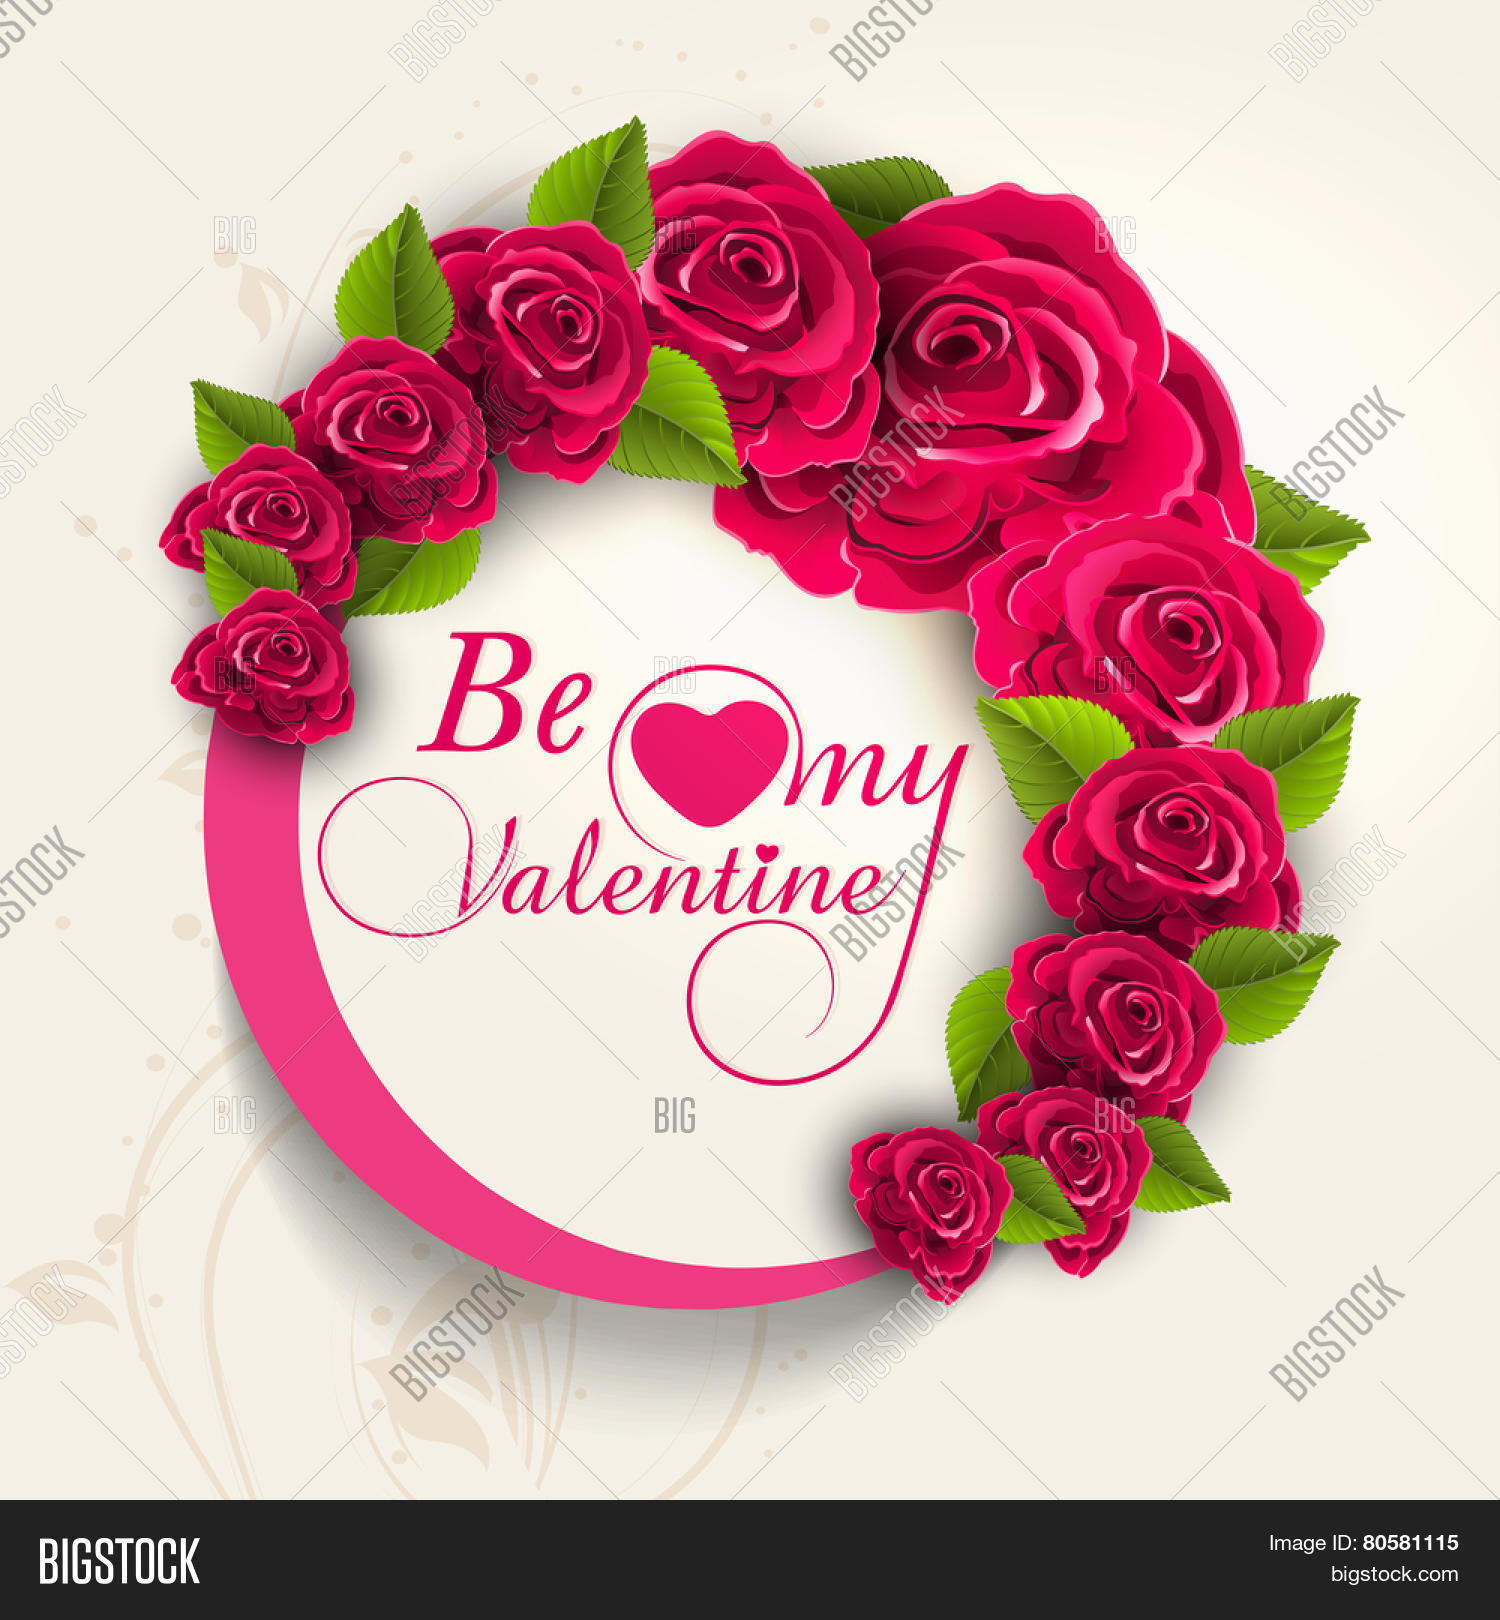 Beautiful frame vector photo free trial bigstock beautiful frame decorated by rose flowers with text be my valentine for happy valentines day celebration izmirmasajfo